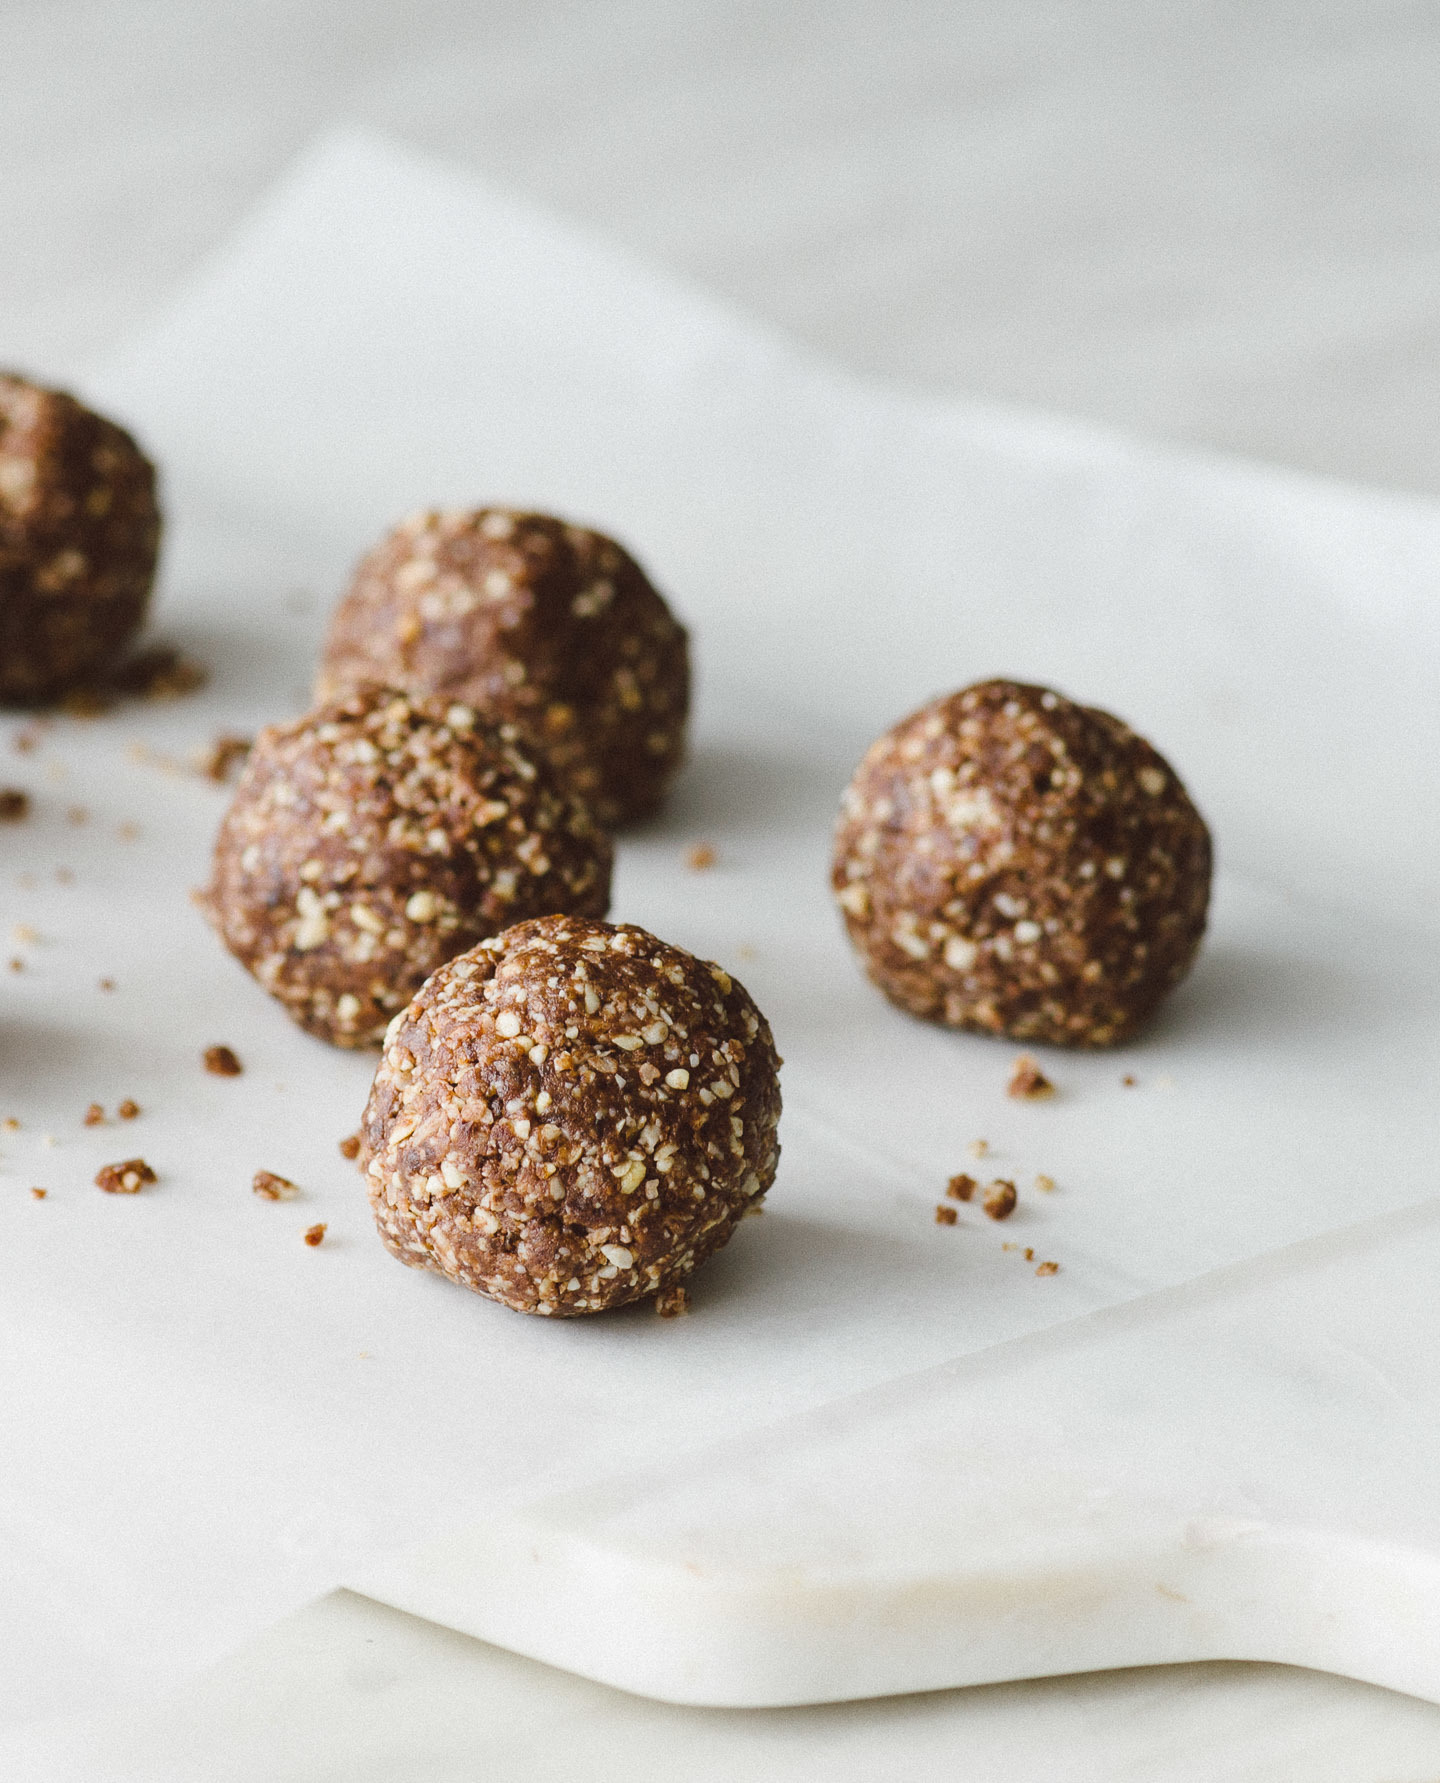 Cookbook Clubs and Chocolate Peanut Butter Balls